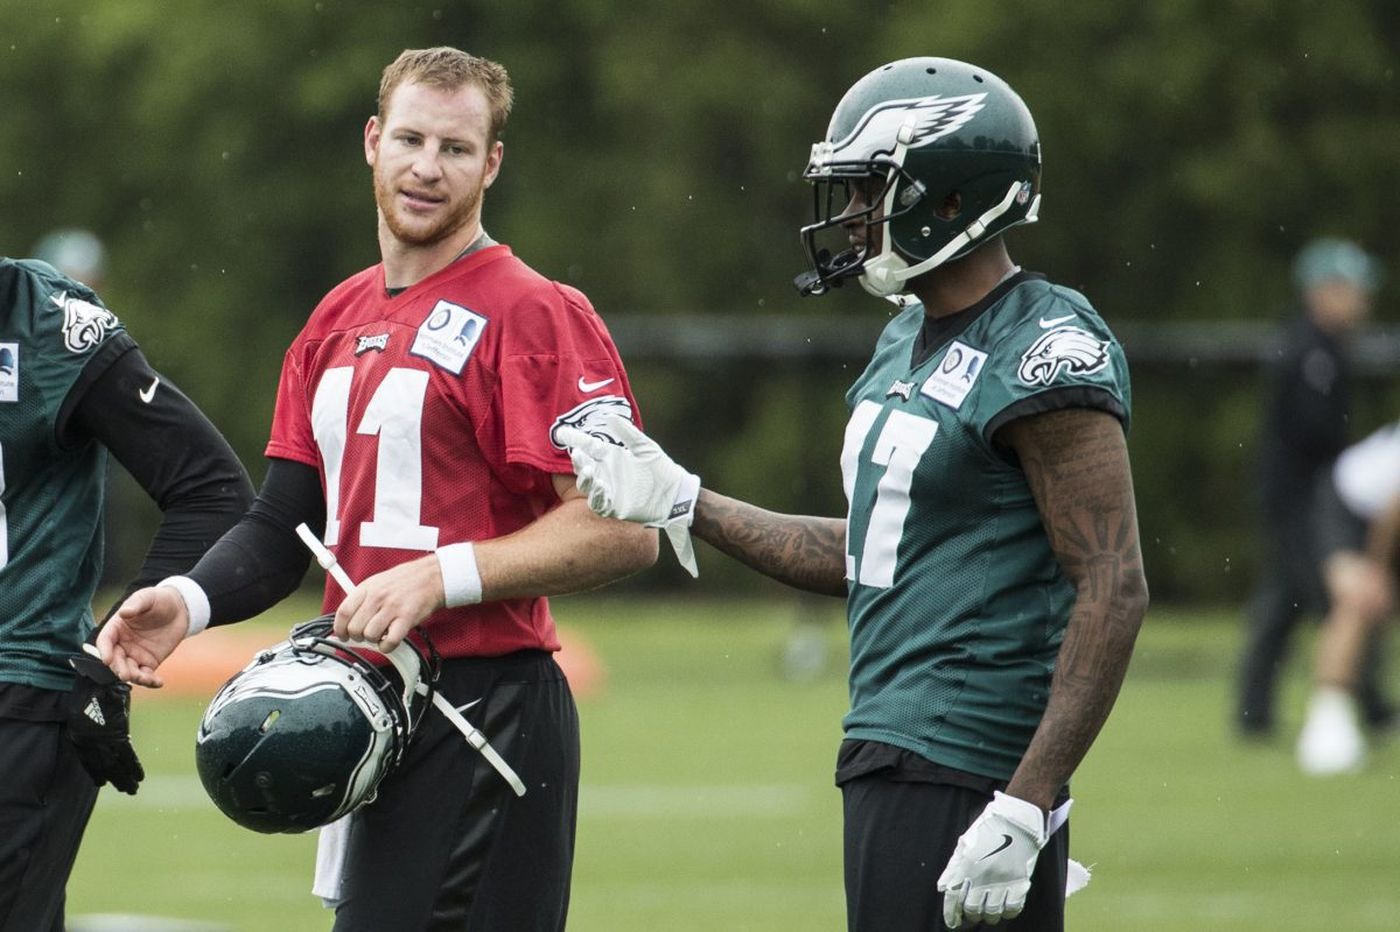 Eagles wide receivers are in North Dakota to work out with Carson Wentz